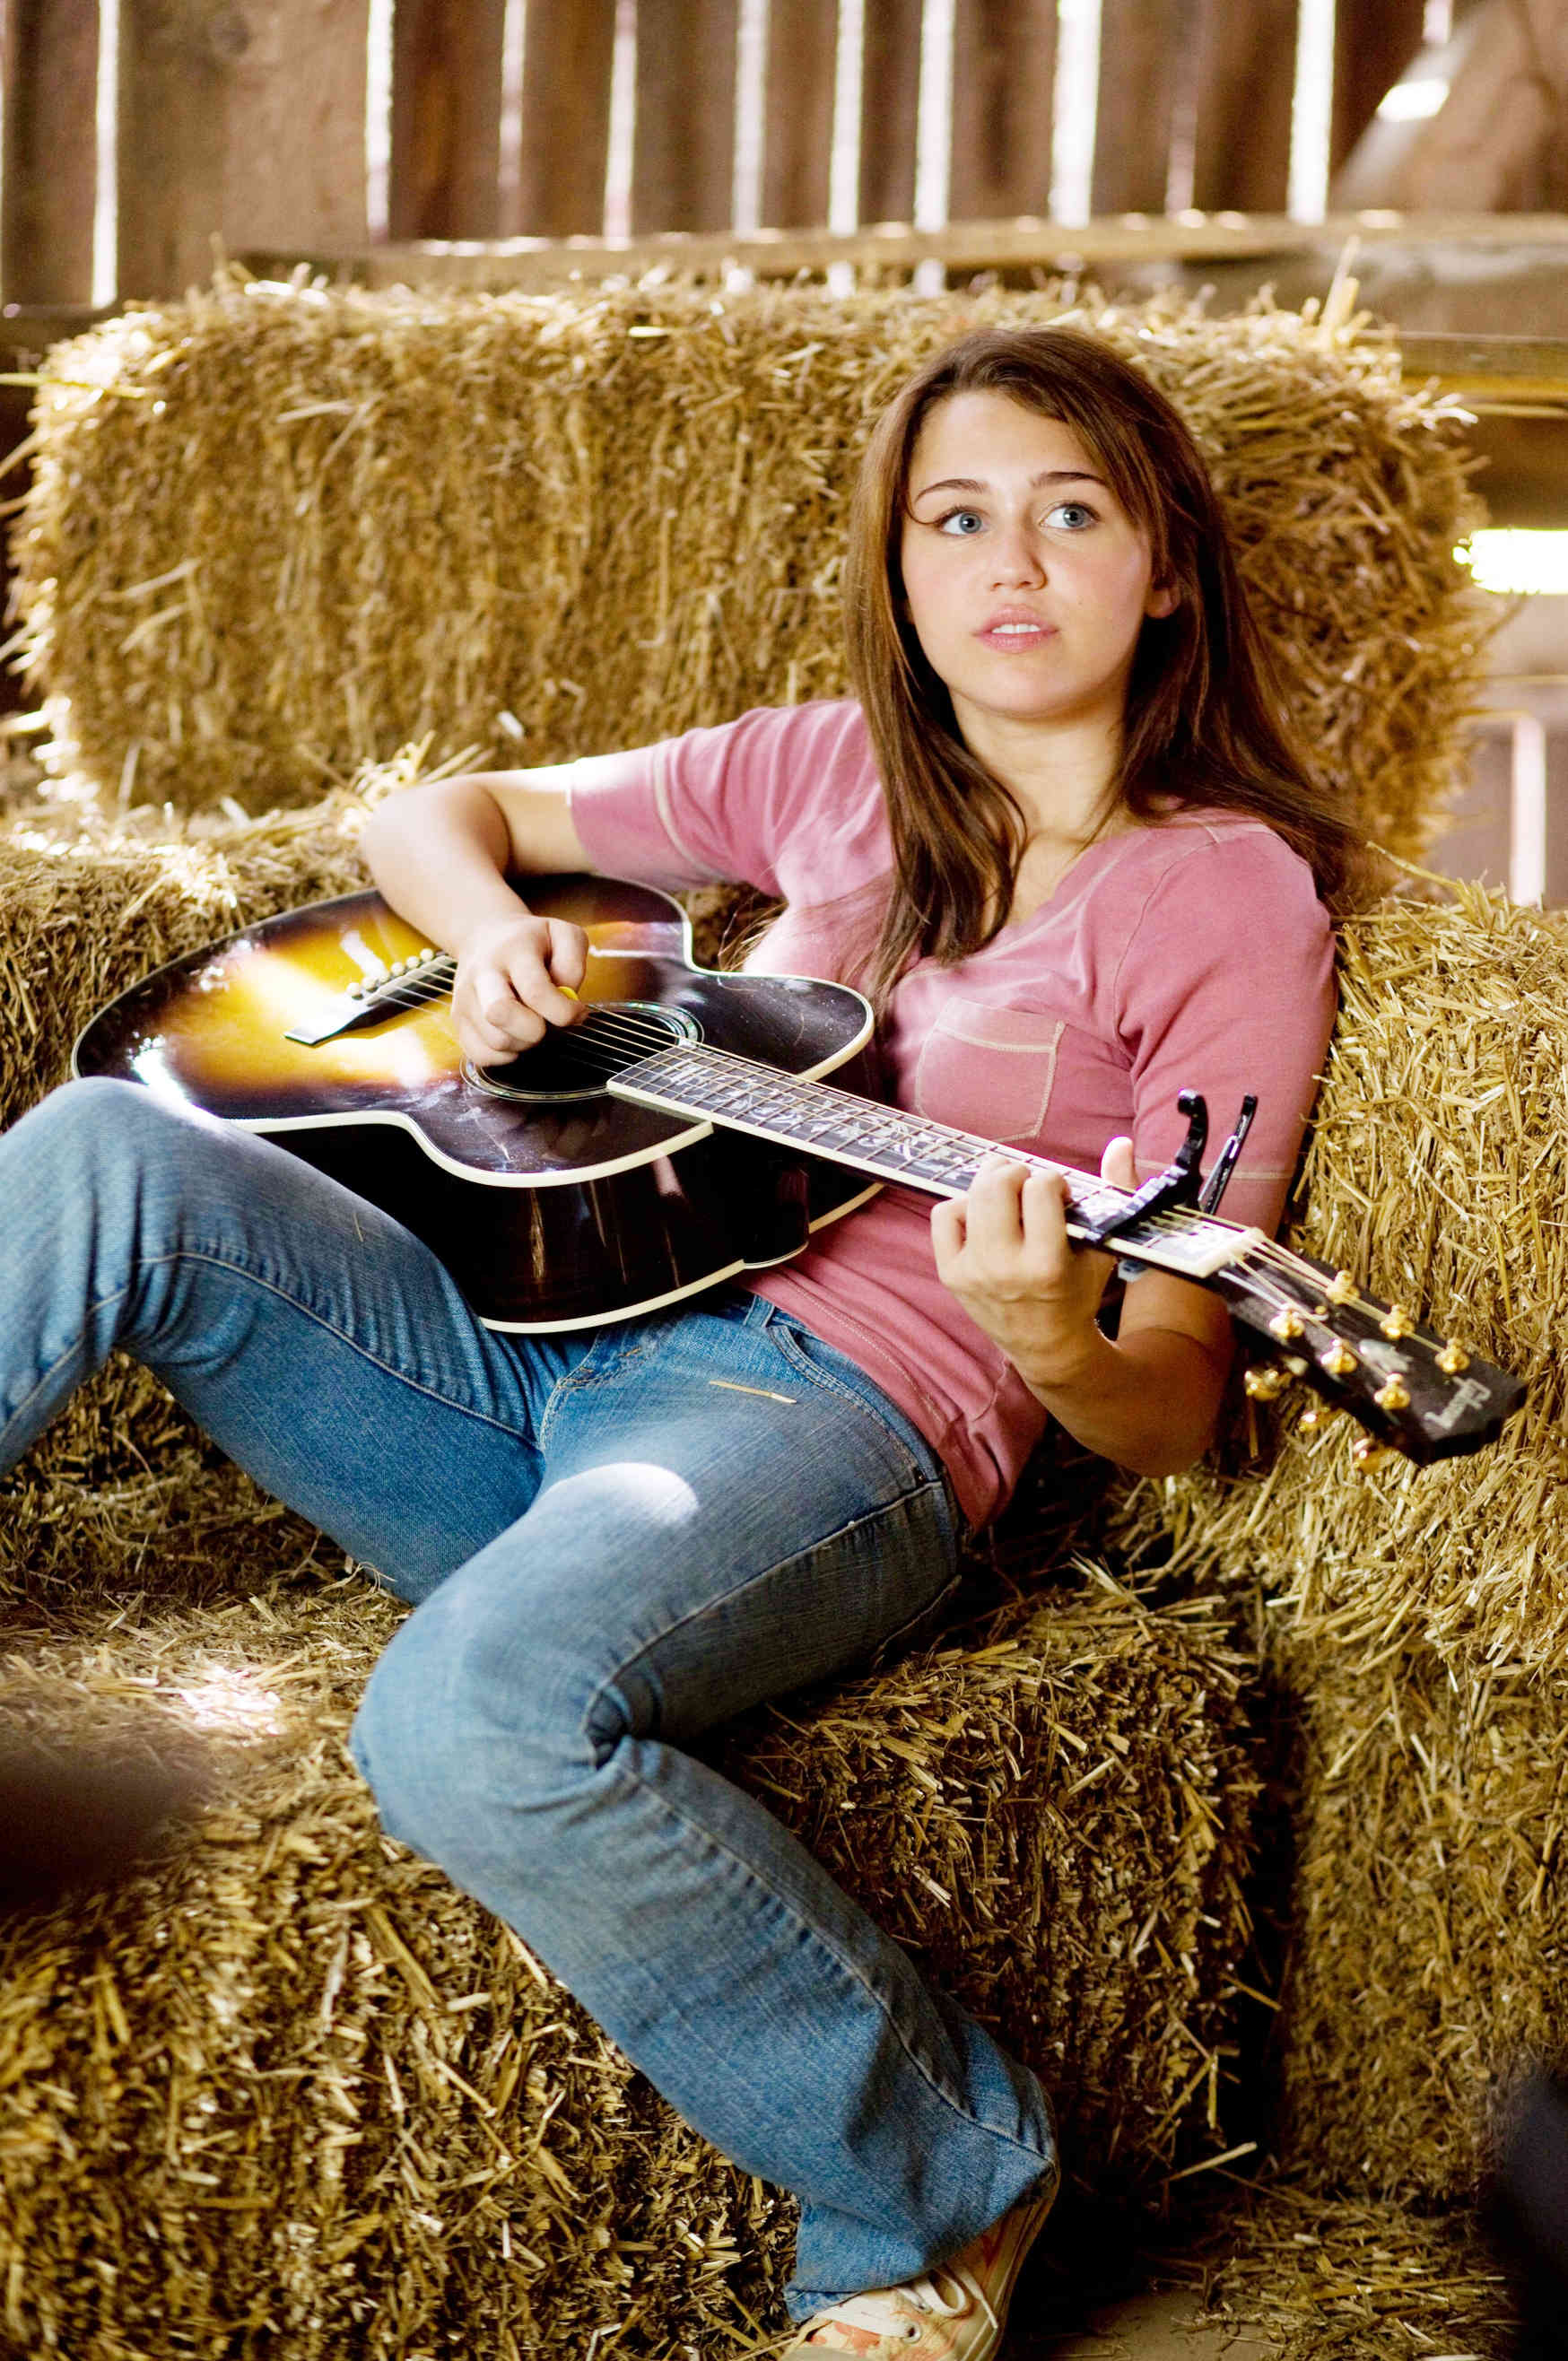 Hannah Montana The Movie Theme Song Movie Theme Songs